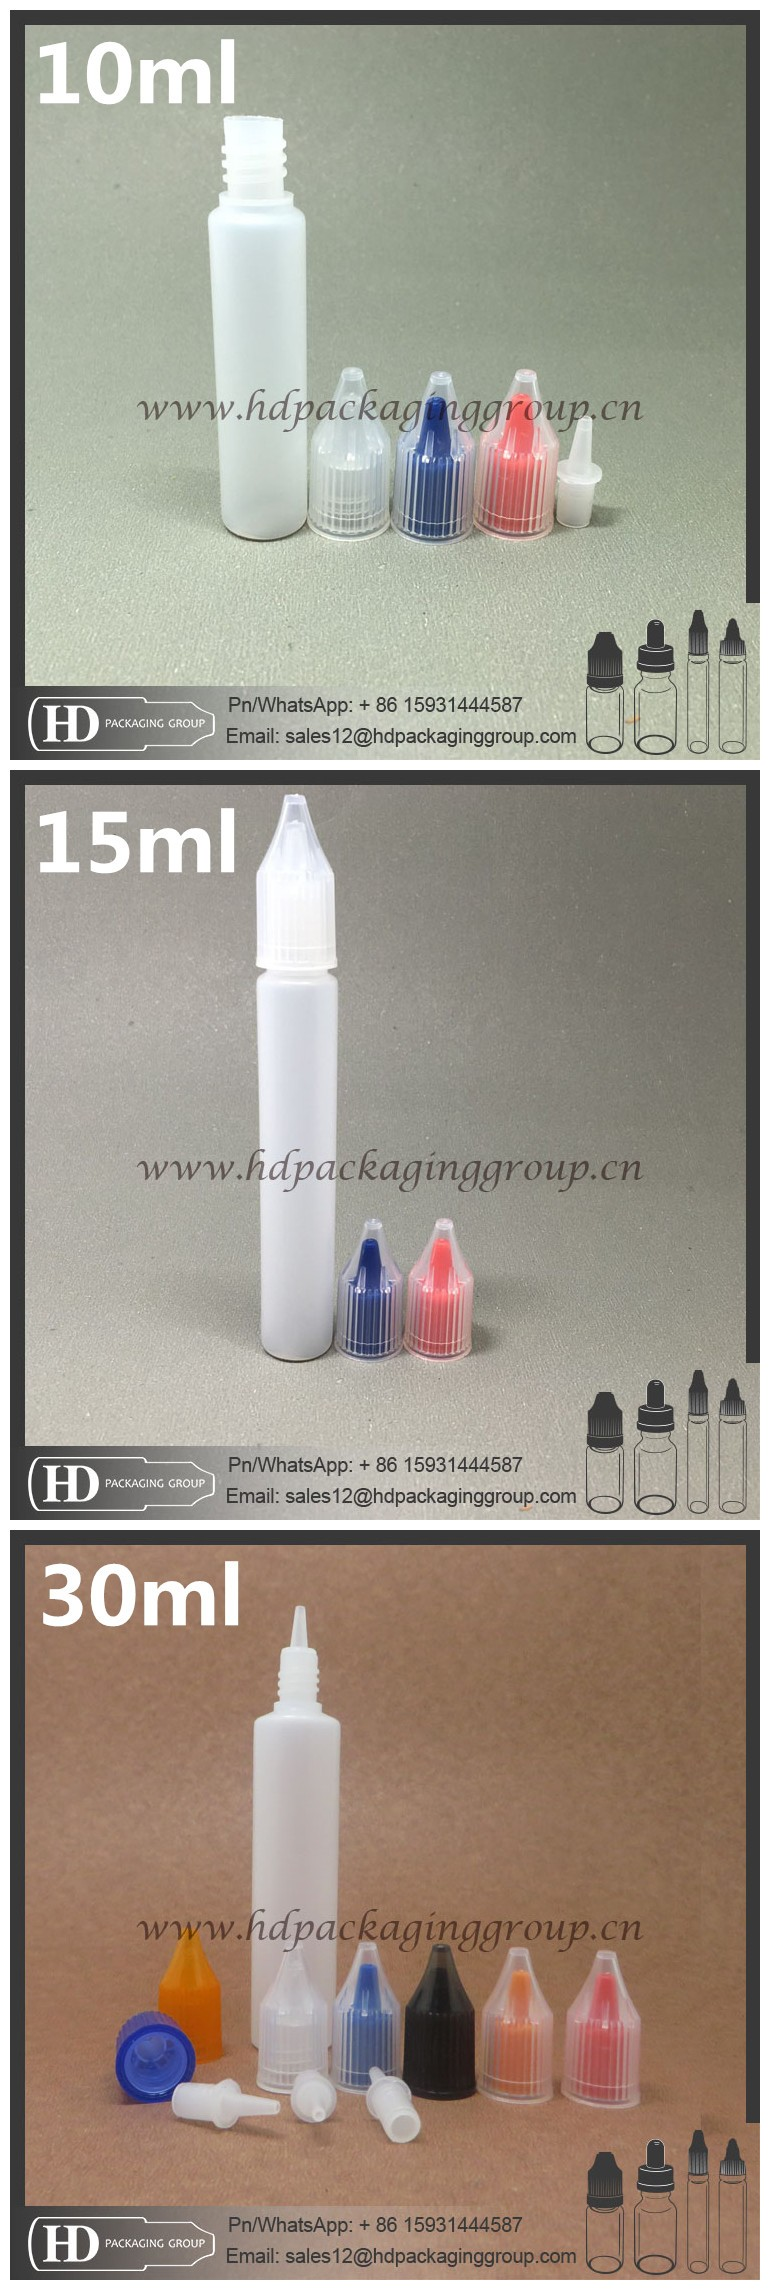 hot new product pe plastic 50ml pen shape bottle for e liquid with screw cap long thin dripper from shenzhen manufacturer